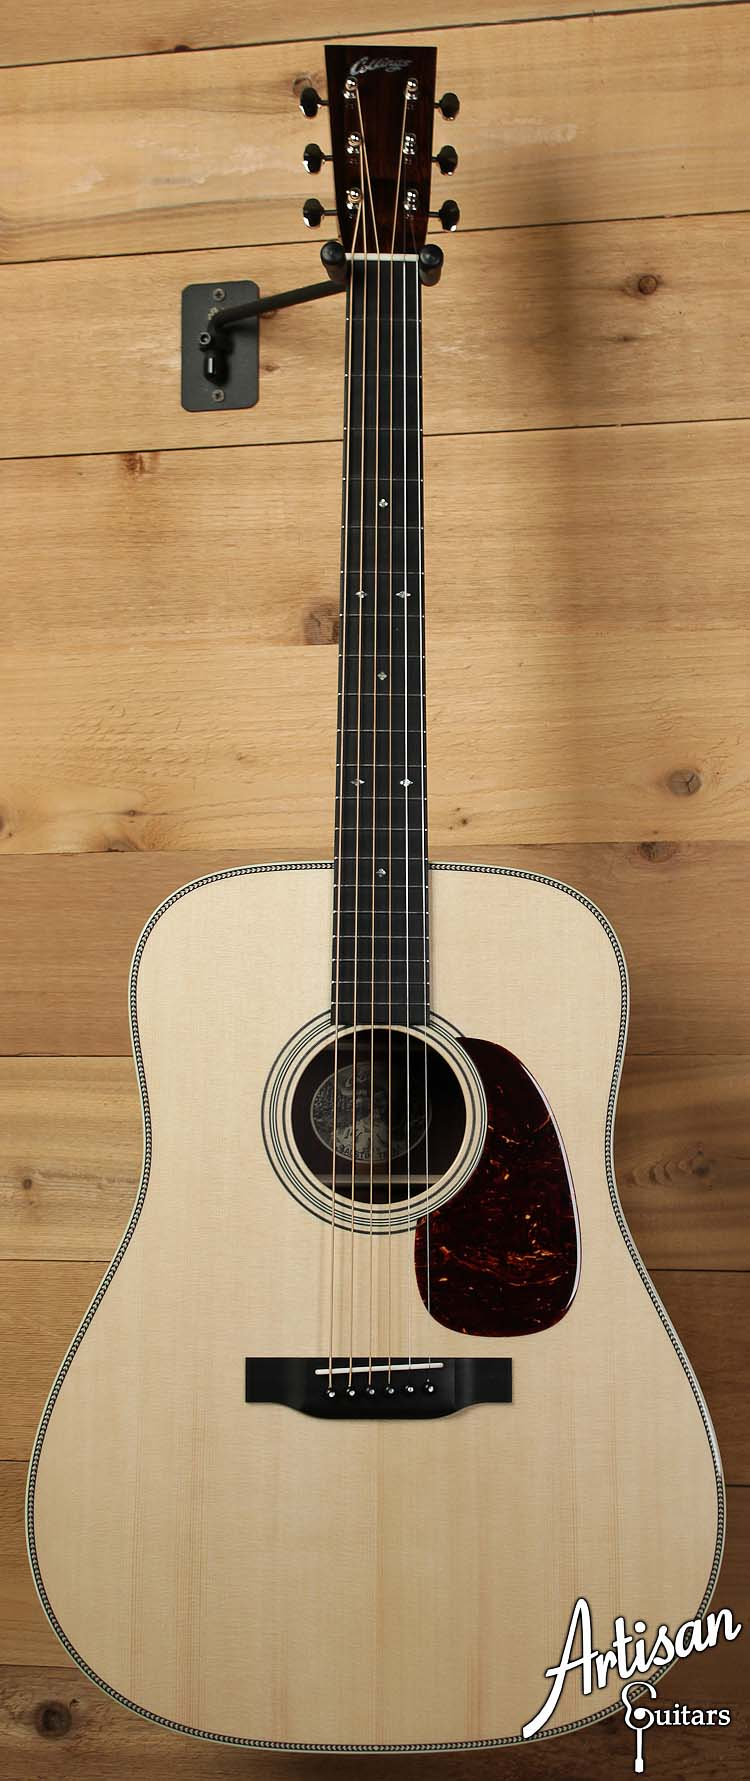 Collings D2HG German Spruce with Adirondack Bracing and Indian Rosewood Back and Sides No Tongue Brace ID-6332